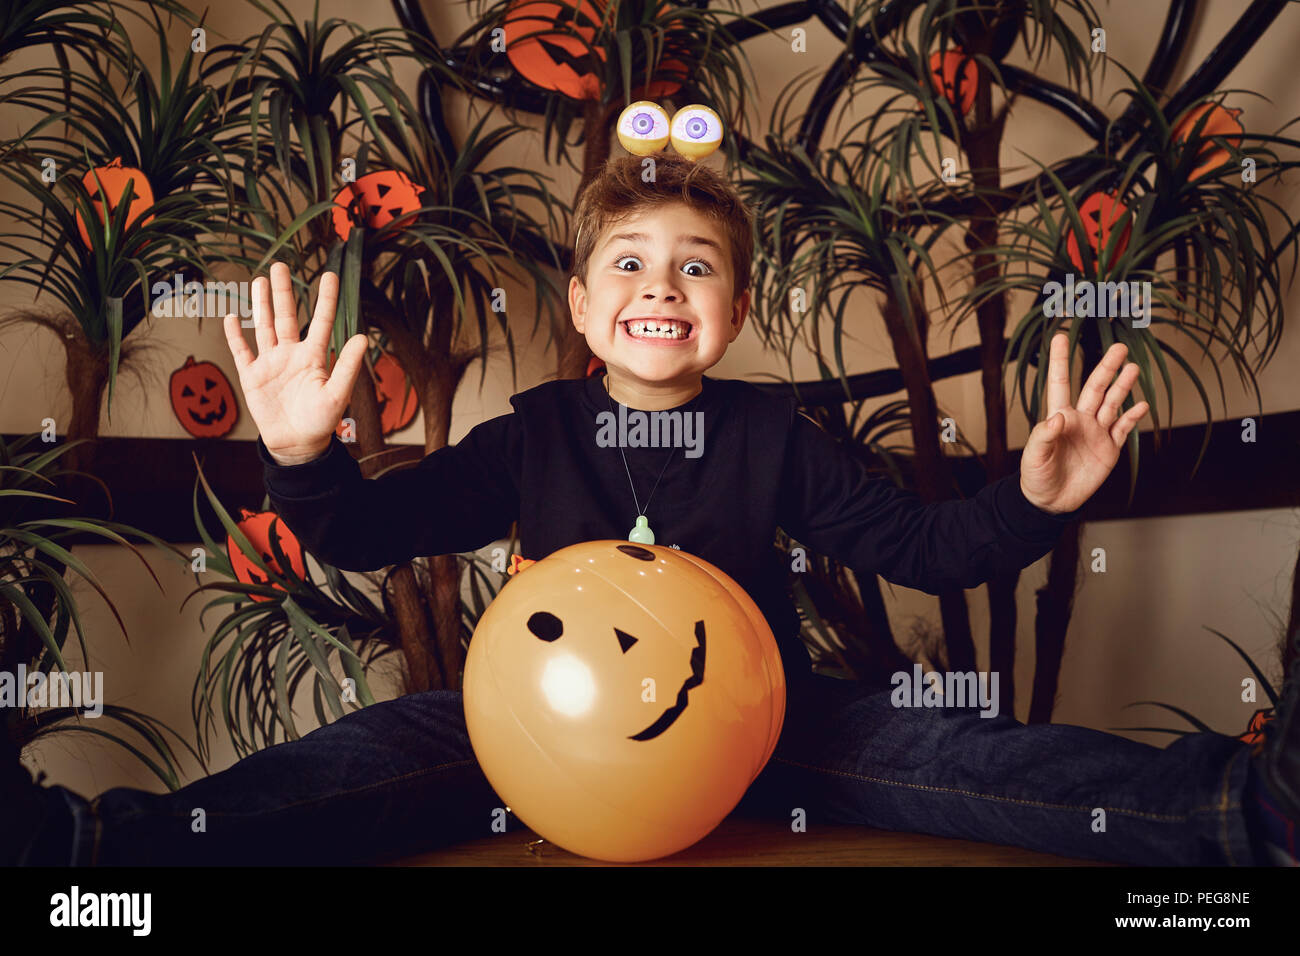 Funny boy in a Halloween costume - Stock Image